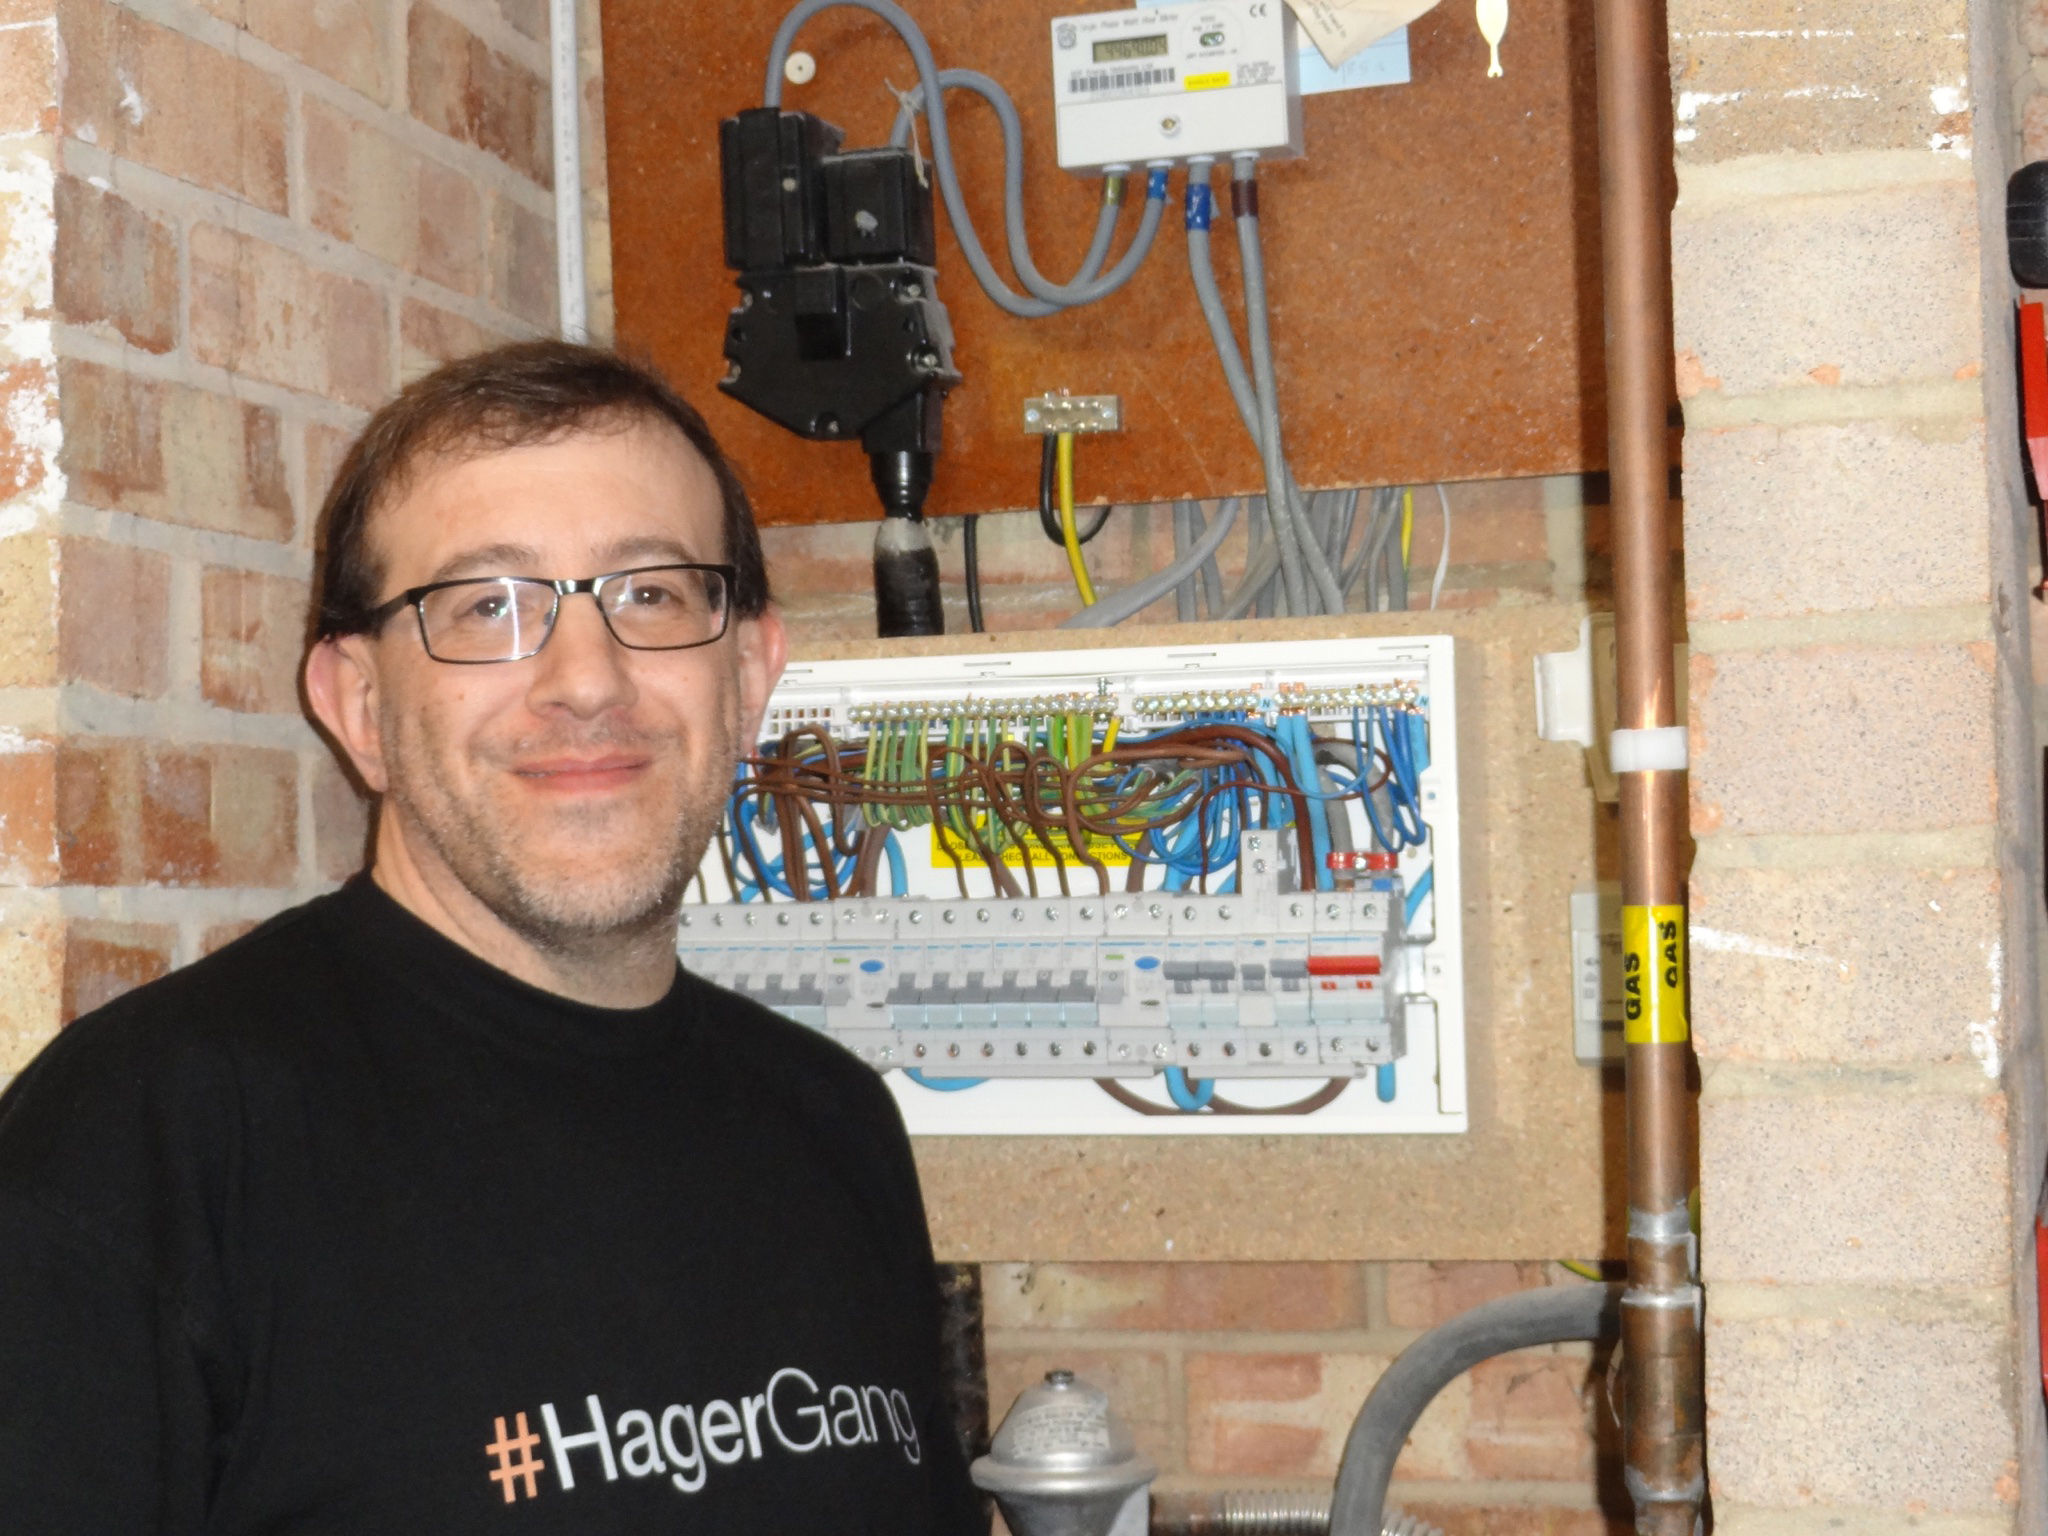 Hager Meets Electrician's Demands